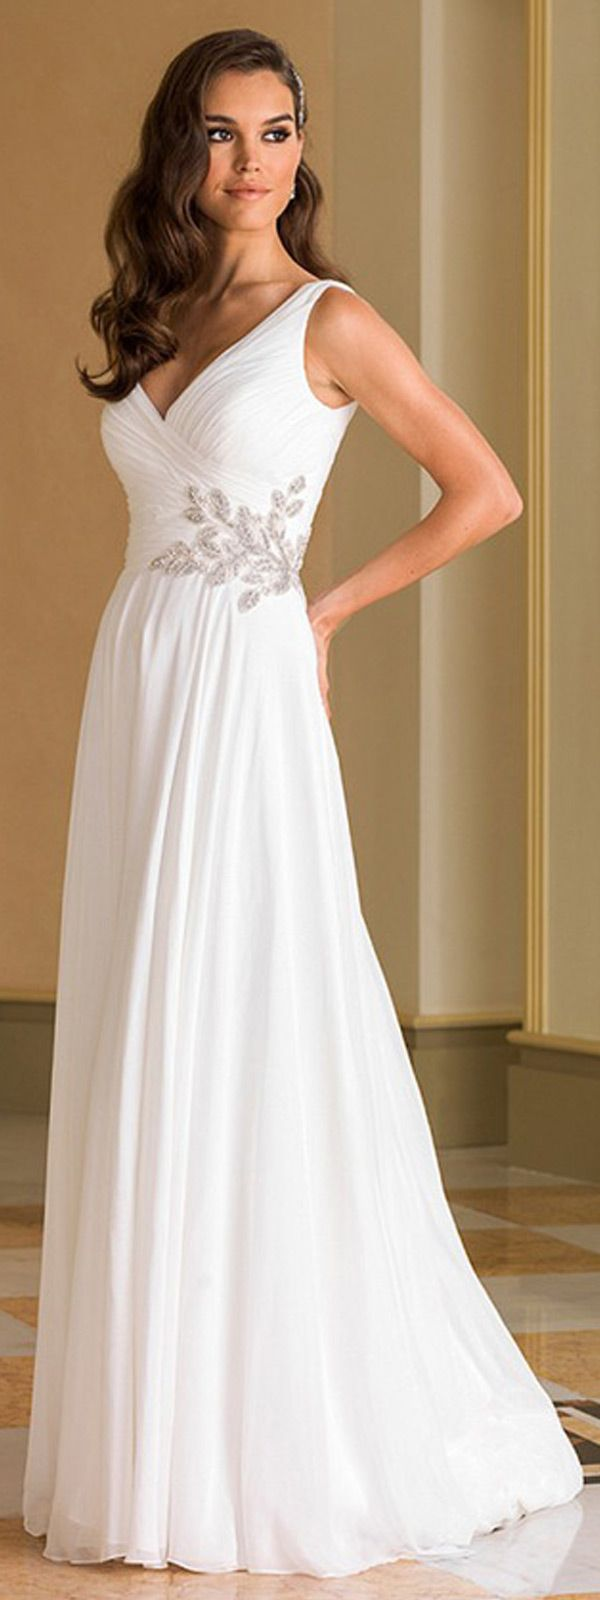 Best 25 chiffon wedding dresses ideas on pinterest for Wedding dress neckline styles